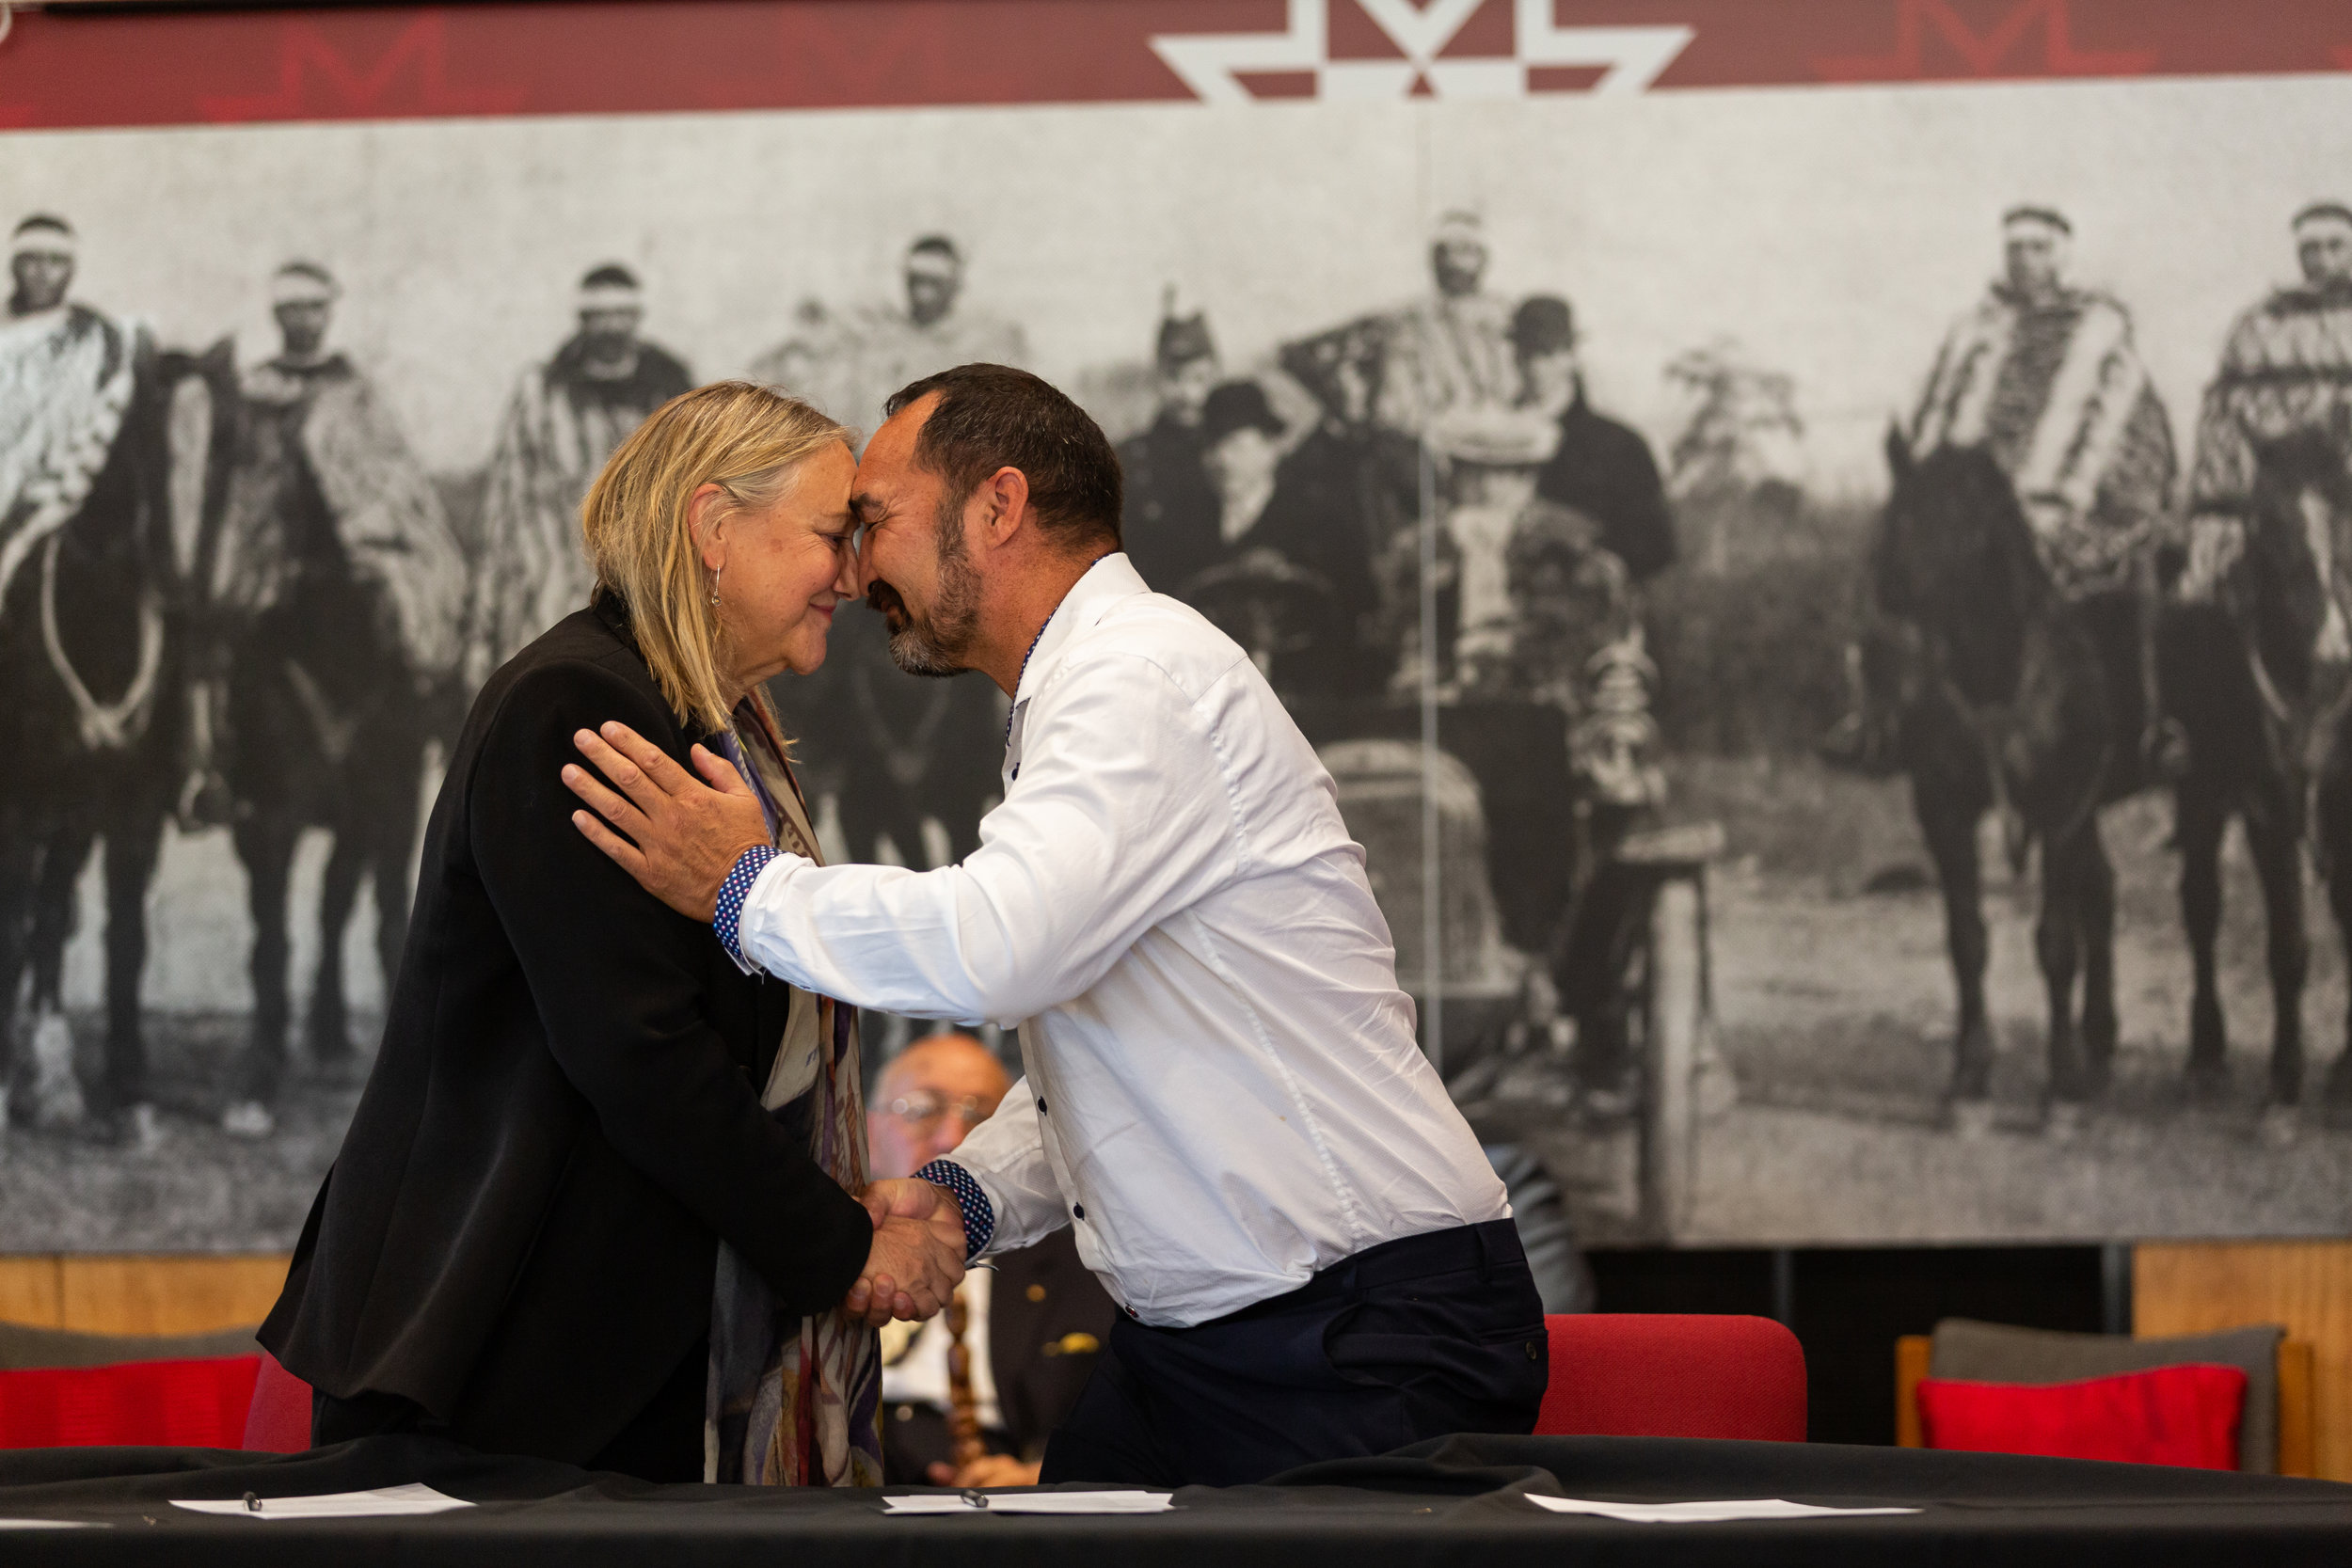 UC Chancellor | Tumu Kaunihera Sue McCormack and Chair of Te Ngāi Tūāhuriri Rūnanga, Arapata Reuben, after signing the agreement at Tuahiwi marae on Saturday. (Photo credit: University of Canterbury)